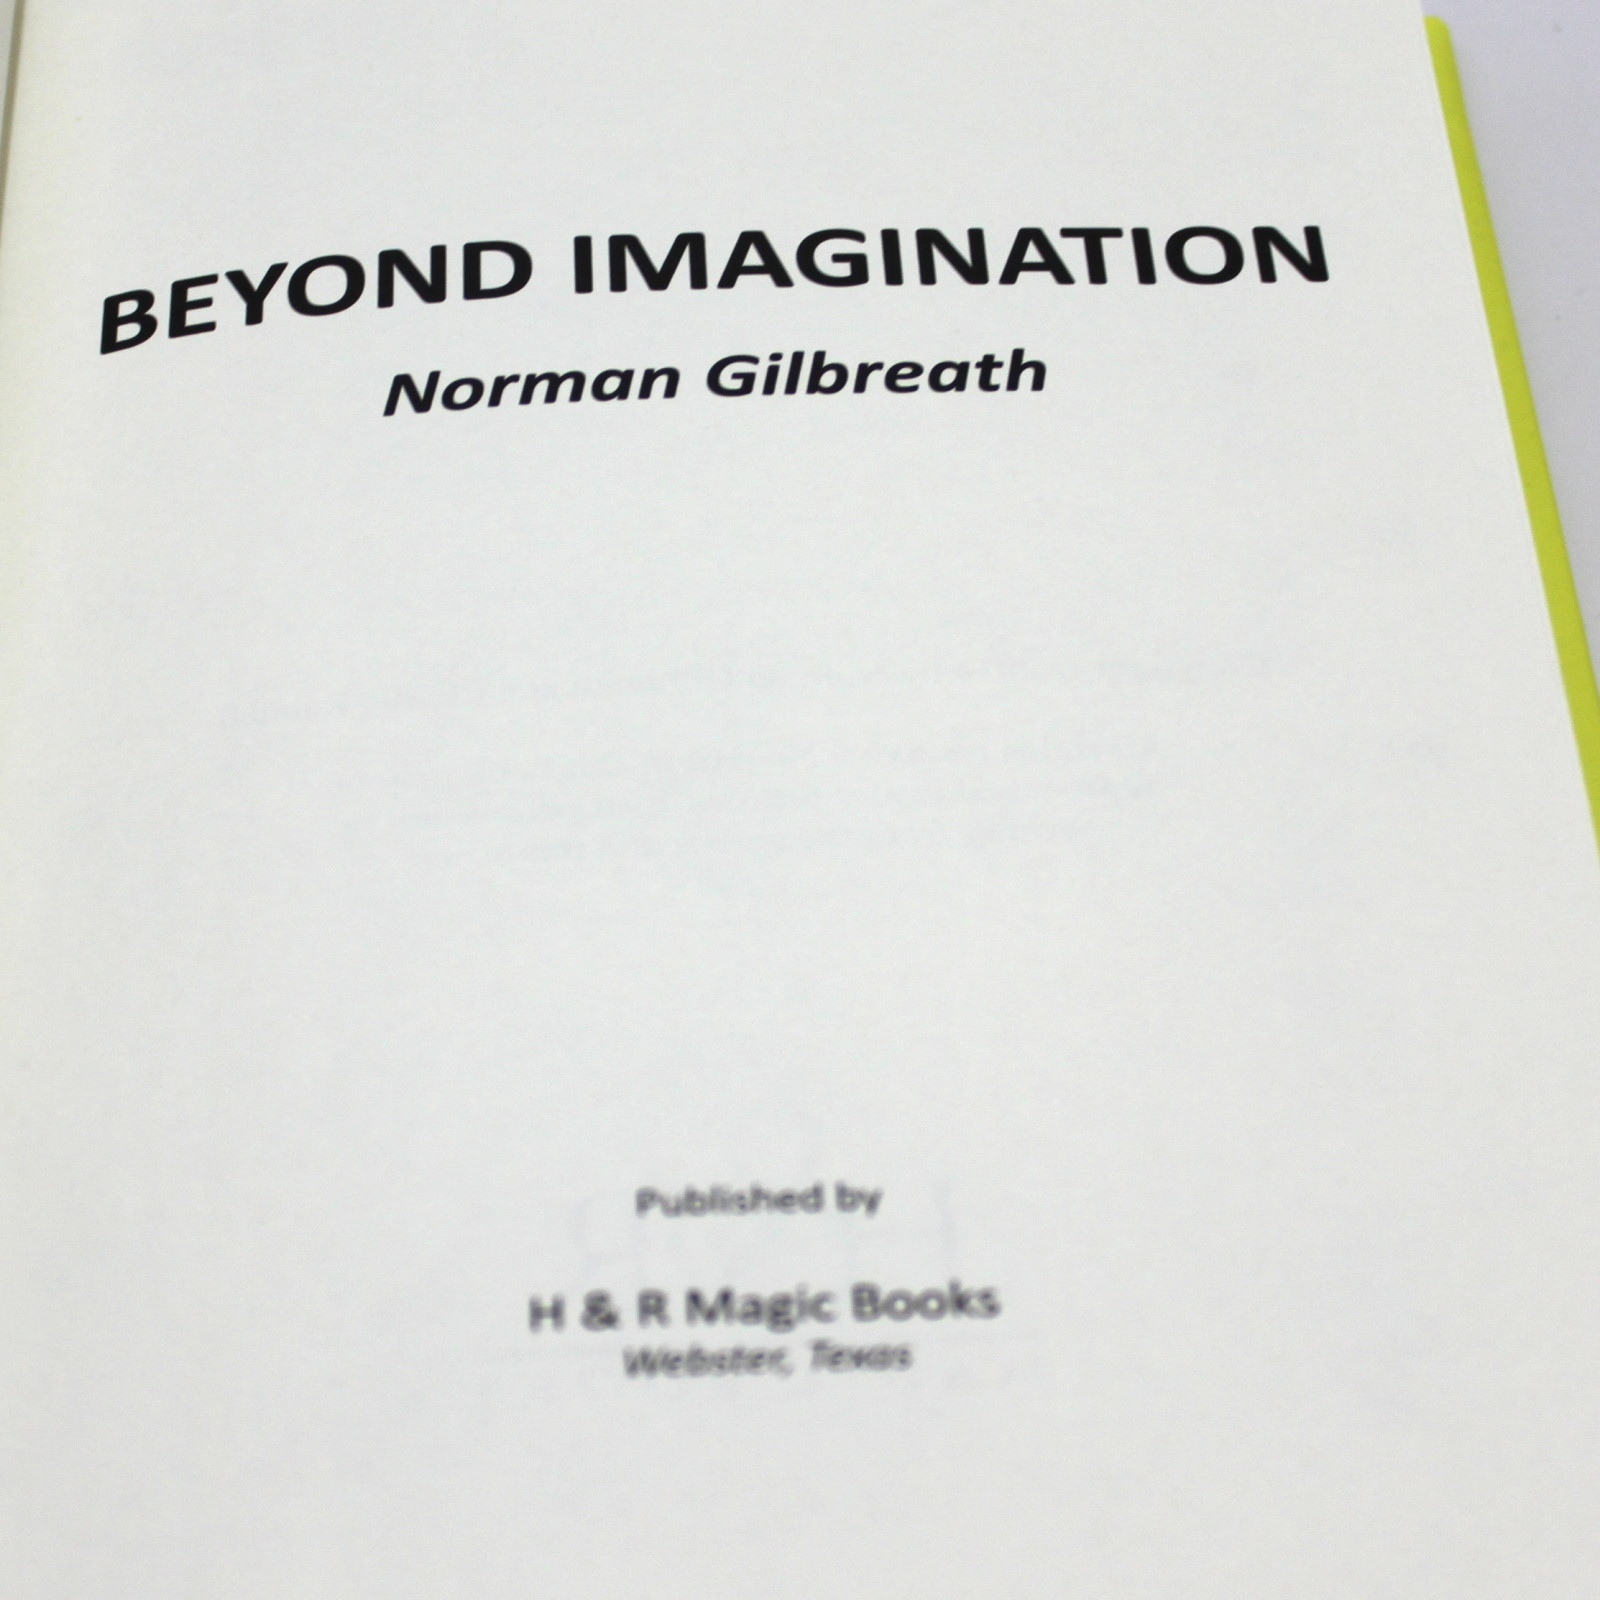 Beyond Imagination by Norman Gilbreath